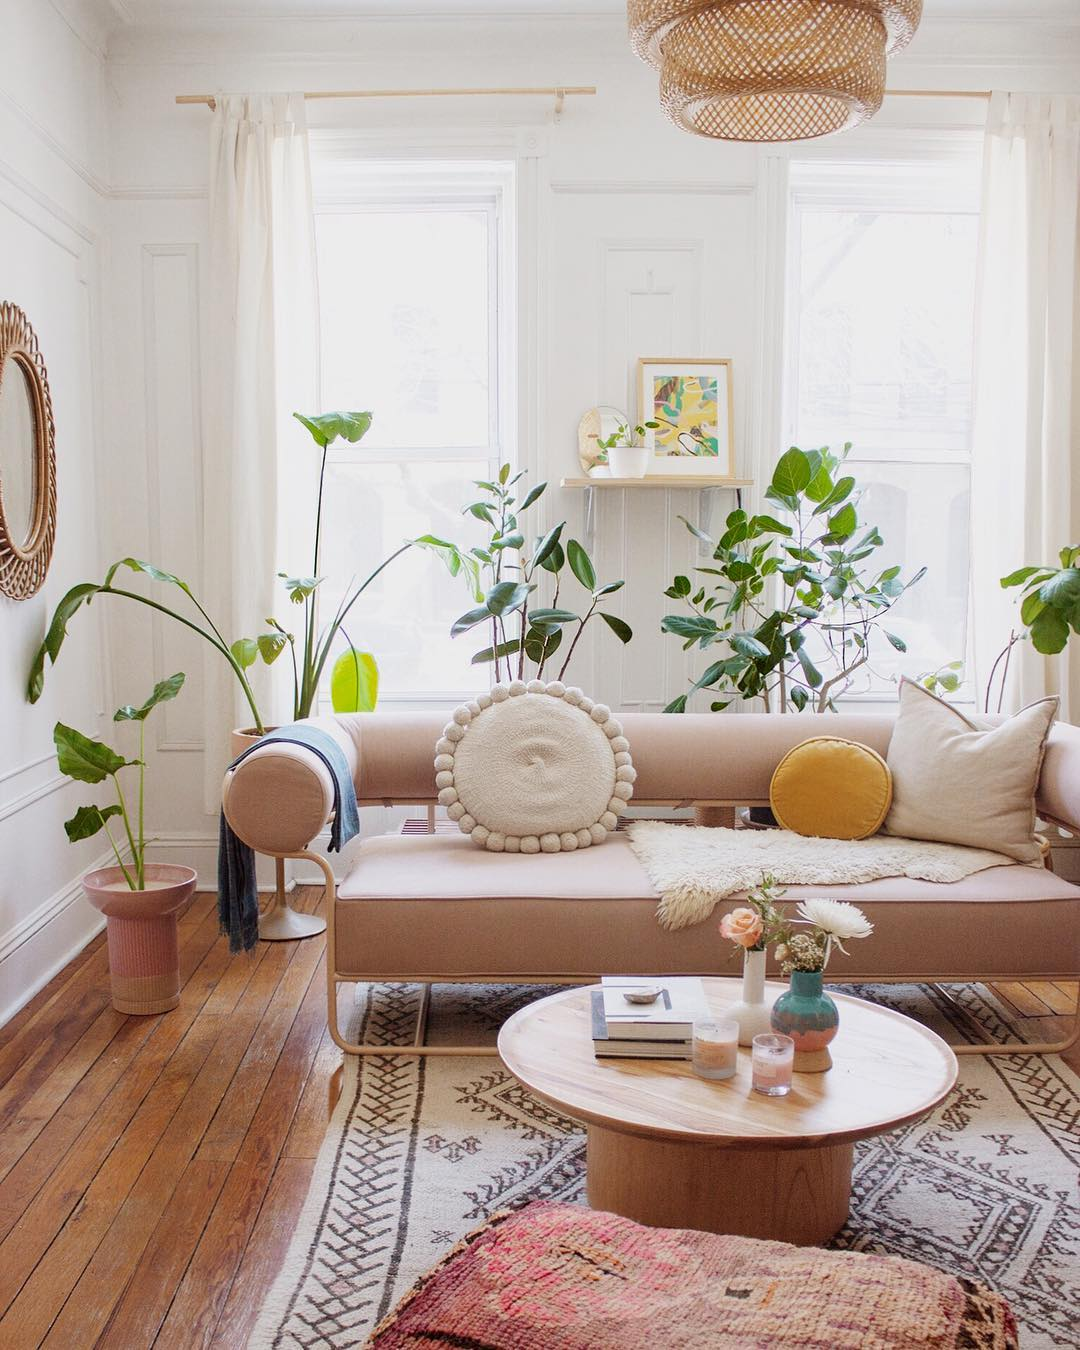 10 Stylish Renters You Should Follow On Instagram - Apartment Number 4